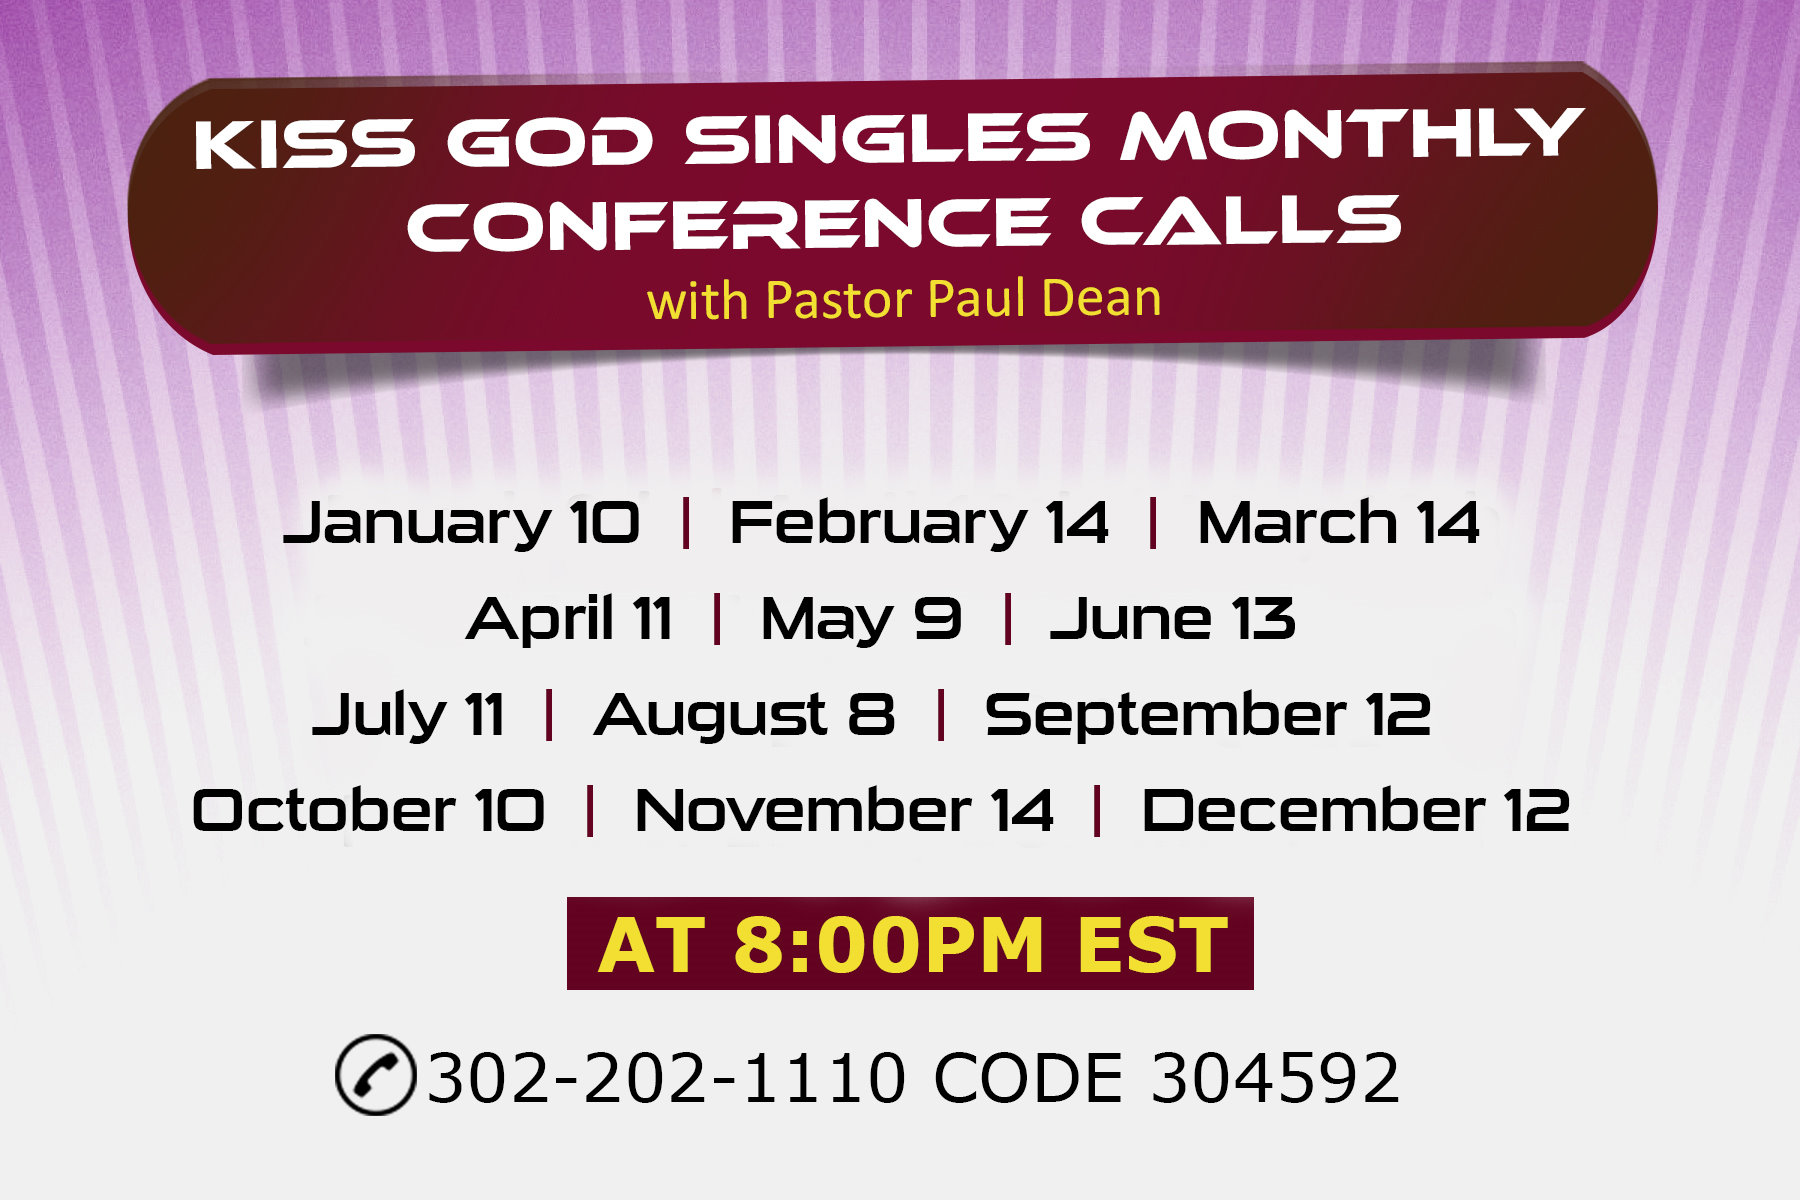 Kiss_God_Singles_monthly_conference_calls